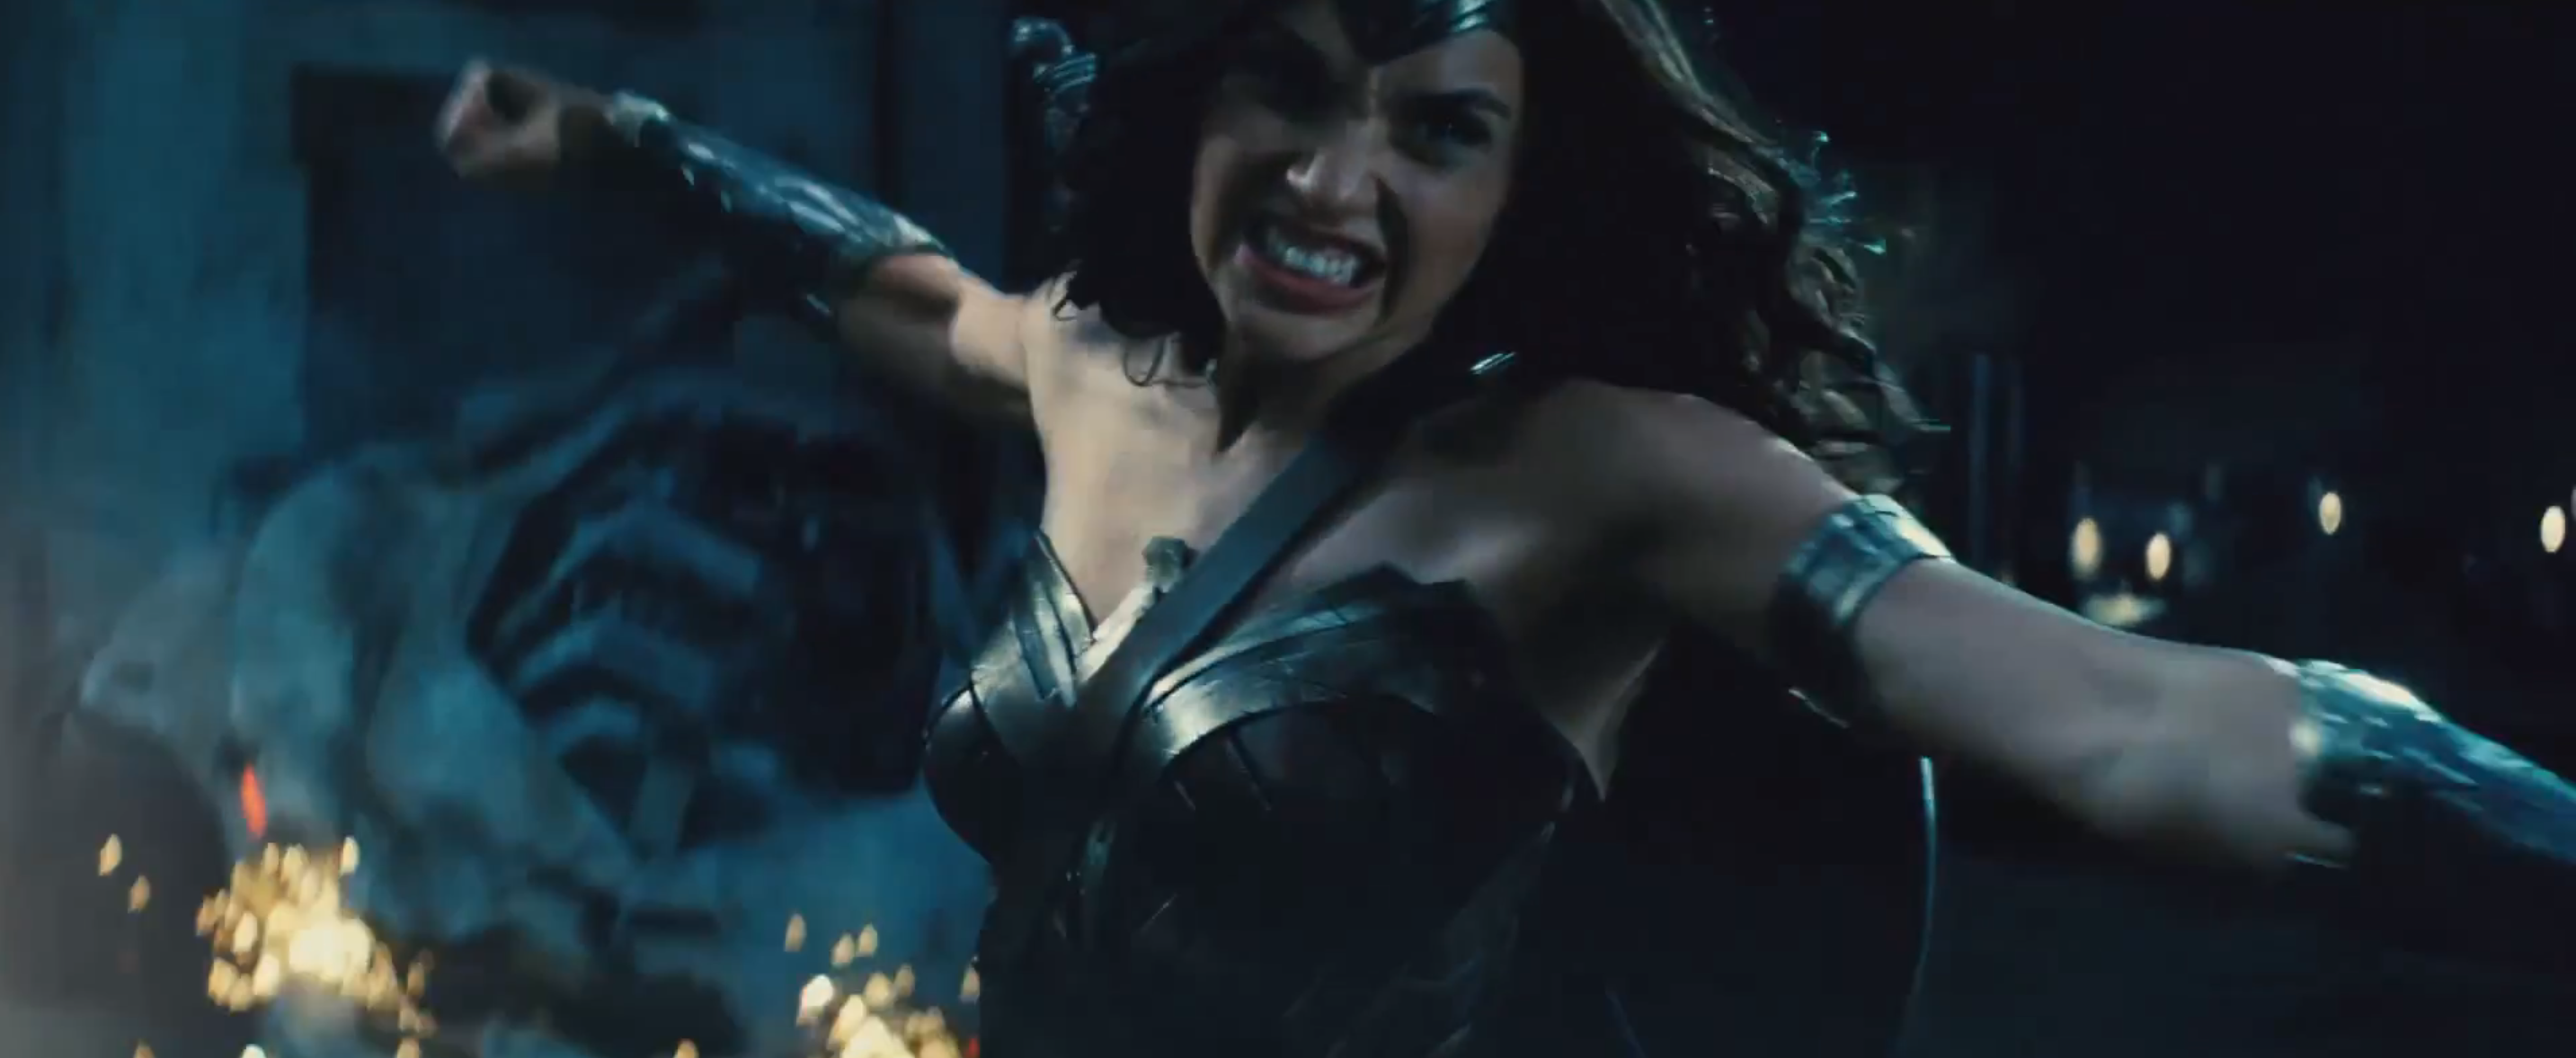 Batman V Superman Wonder Woman Gal Gadot 2 The